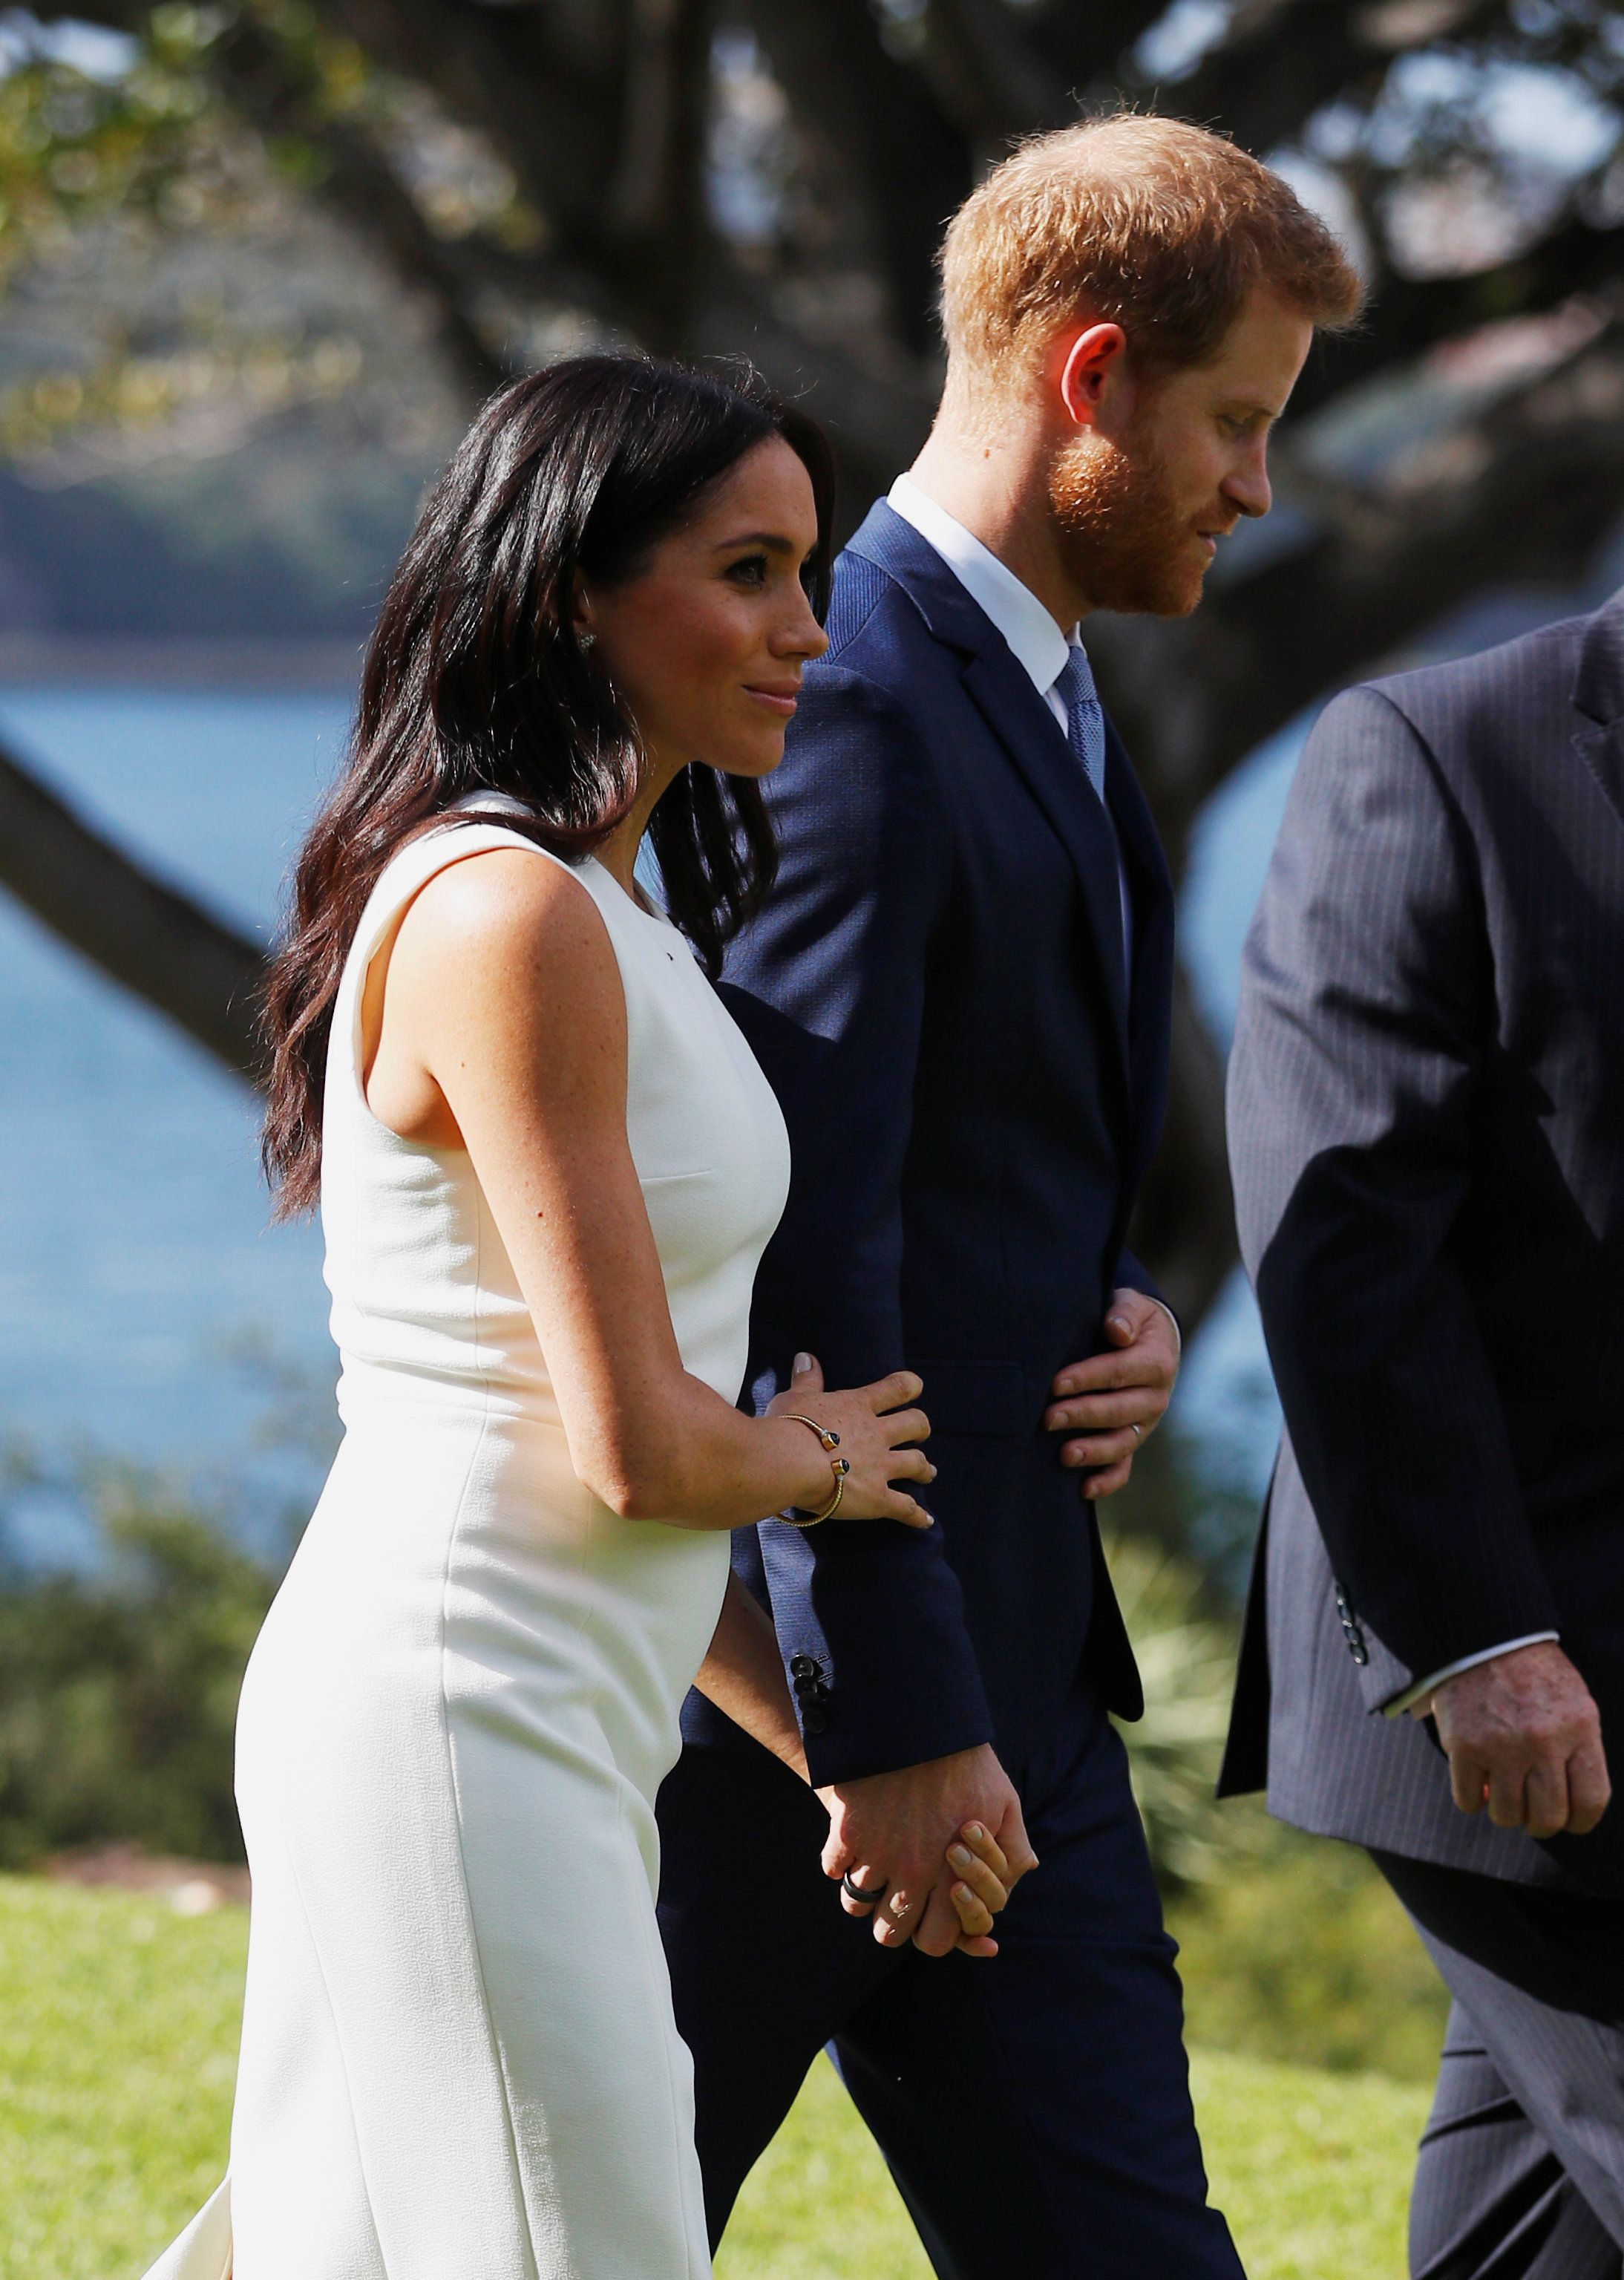 meghan markle, meghan markle outfits, meghan markle zwanger, royal tour, hertogin van sussex, hertog van sussex, prins harry, meghan markle style 2018, meghan markle outfits, meghan markle lifestyle, meghan markle australia, meghan markle kleding, what meghan wore, kleding meghan markle kopen, meghan markle kledingstijl, mode meghan markle, meghan markle jurken, meghan markle schoenen, schoenen meghan markle, mode meghan markle, meghan markle jurk, meghan markle kledingstijl, how to look like meghan markle, meghan markle dure kleding, meghan markle jurken, what meghan wore, meghan fashion, meghan's mirror, meghan fashion style, megan mode, what meghan markle wore, what meghan wore in australia, what meghan markle wore today